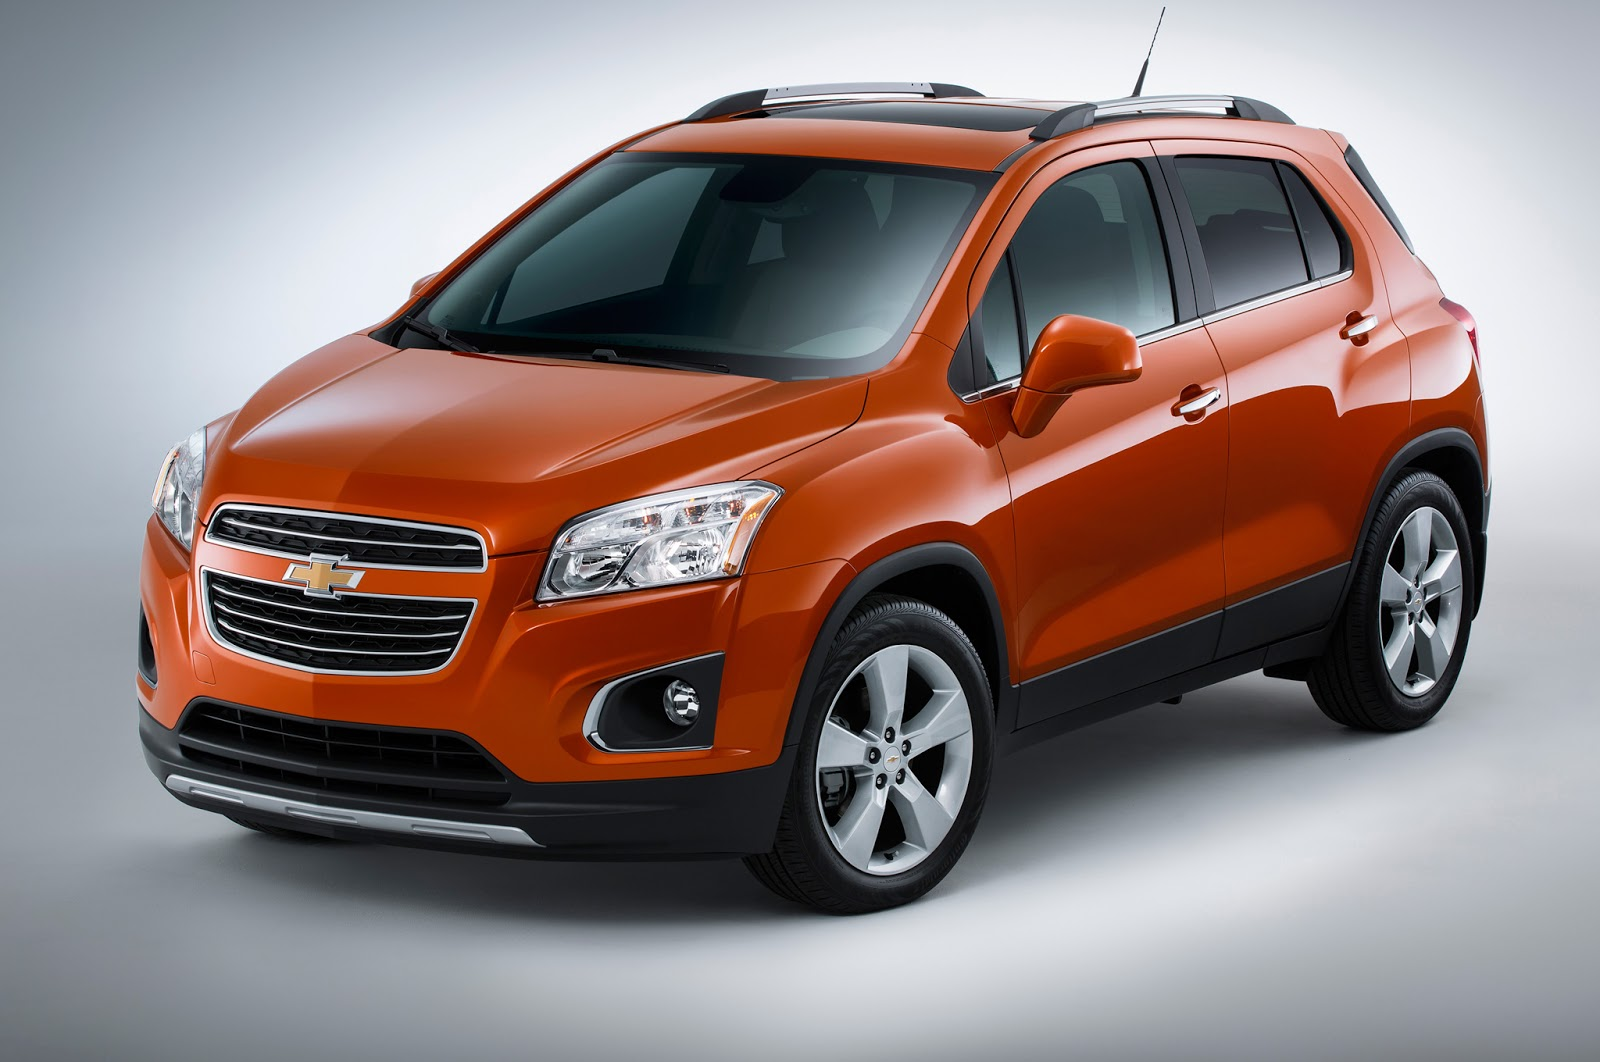 2015 chevrolet trax cheapest mini suv car with wifi bike car art photos images wallpapers pics. Black Bedroom Furniture Sets. Home Design Ideas